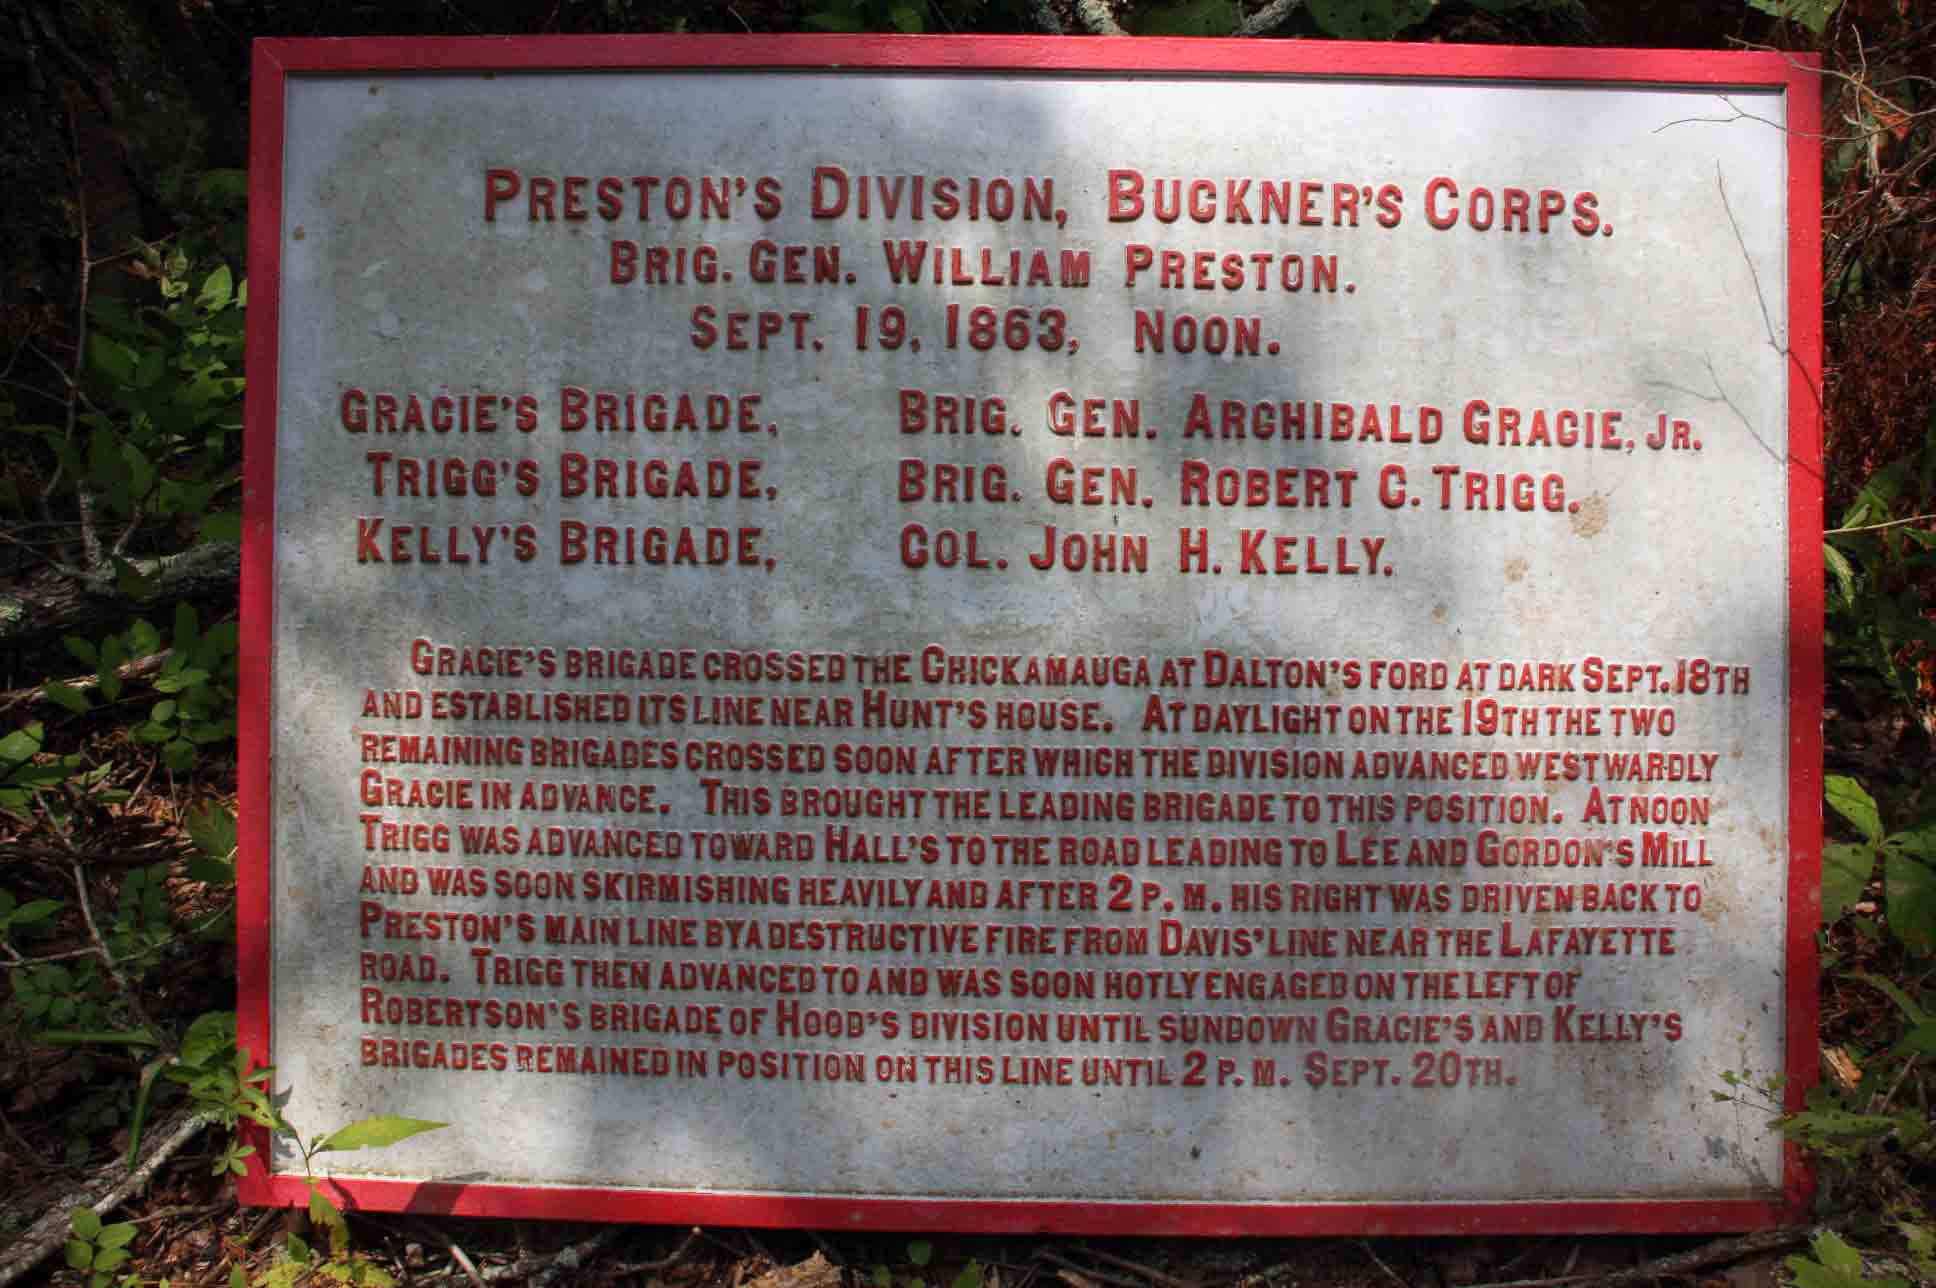 Preston's Division, Buckner's Corps, click photo to enlarge.